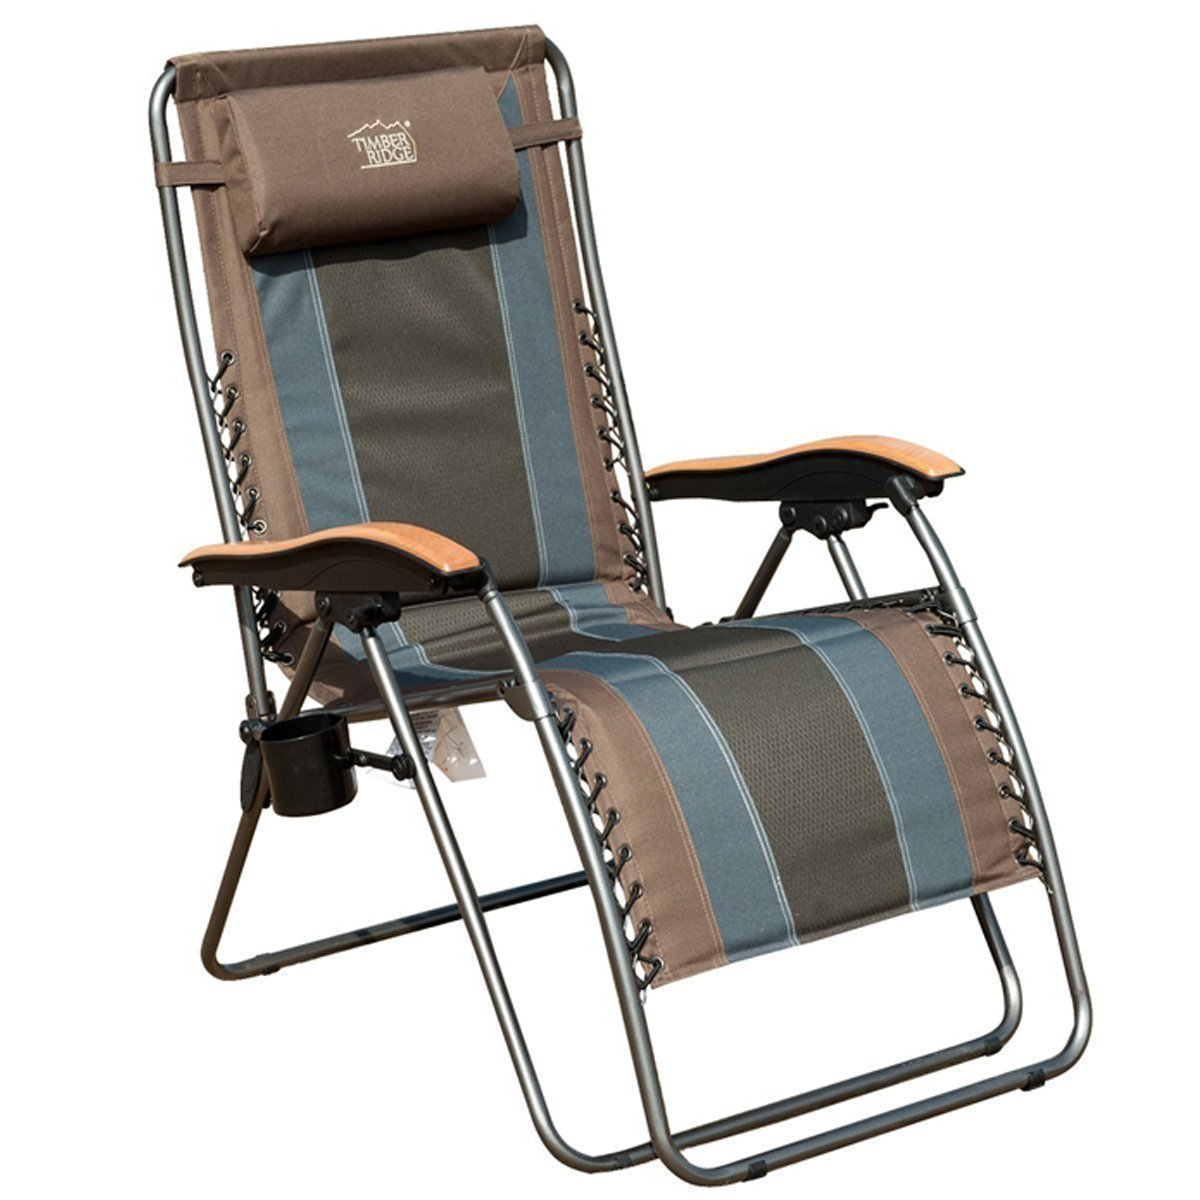 Timber Ridge Outfitters Terralite Portable Camp Chair